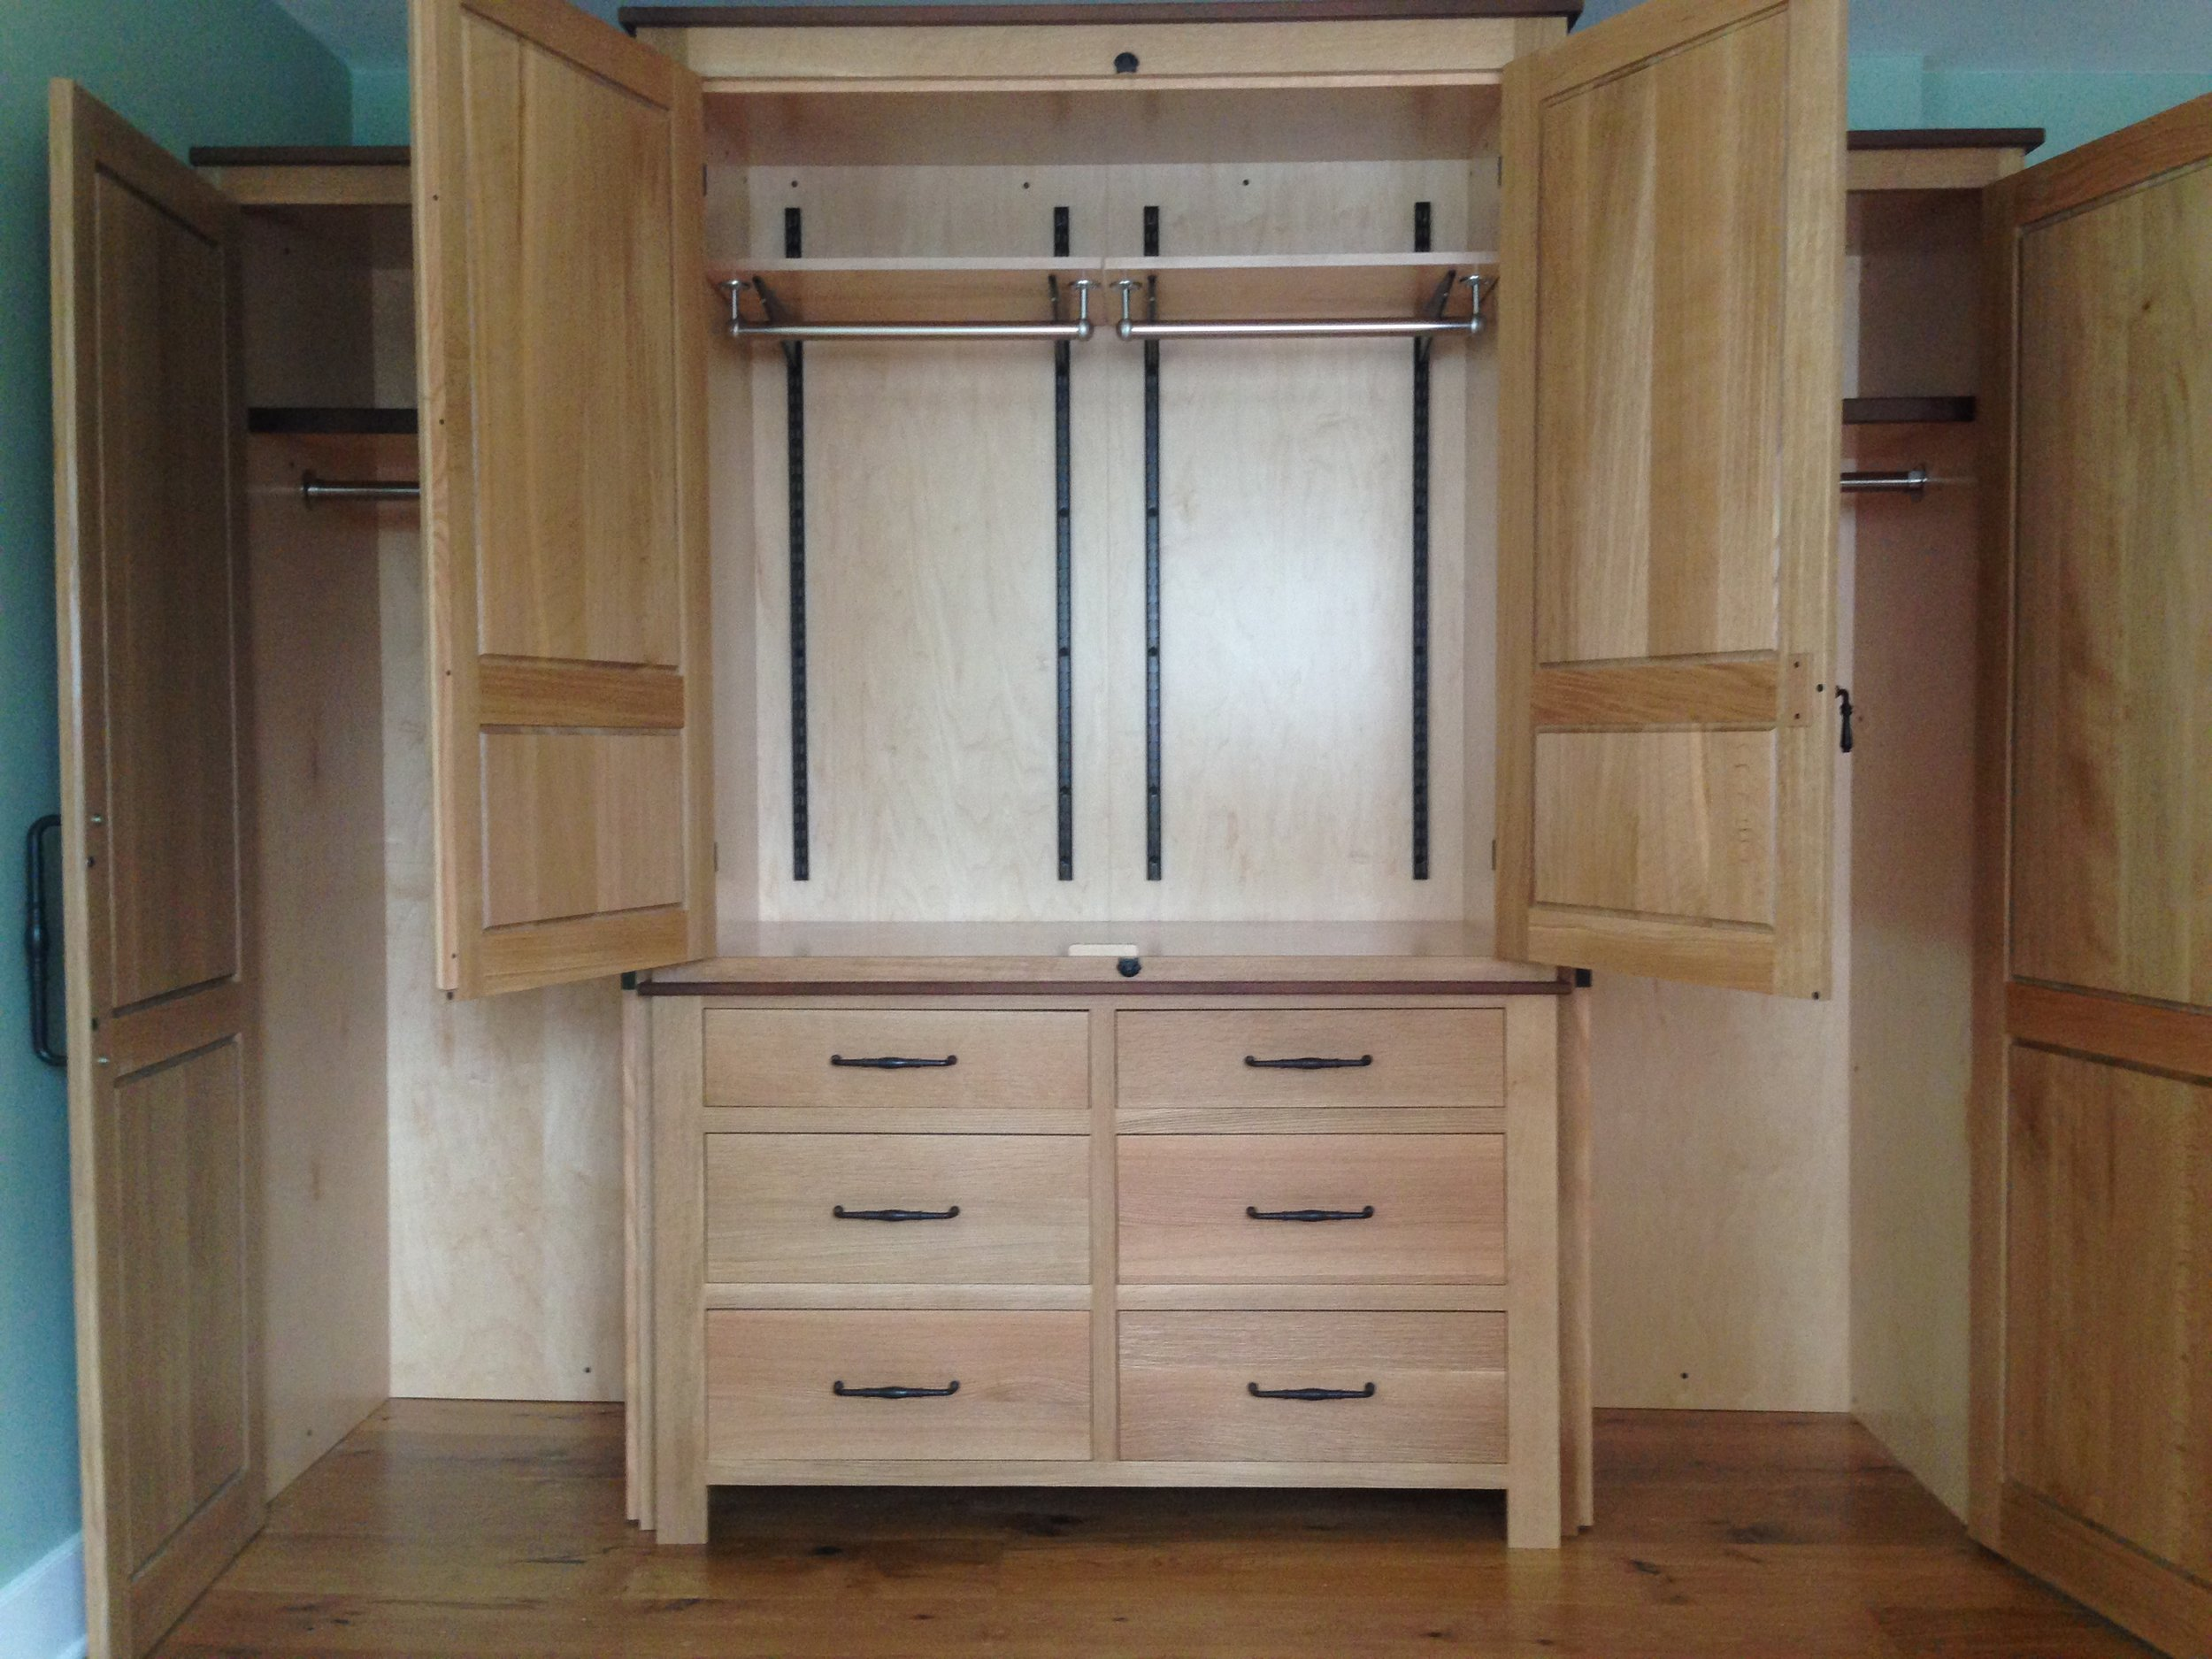 Rough Sawn Oak His:Hers Wardrobe with Walnut Accents 2.jpg